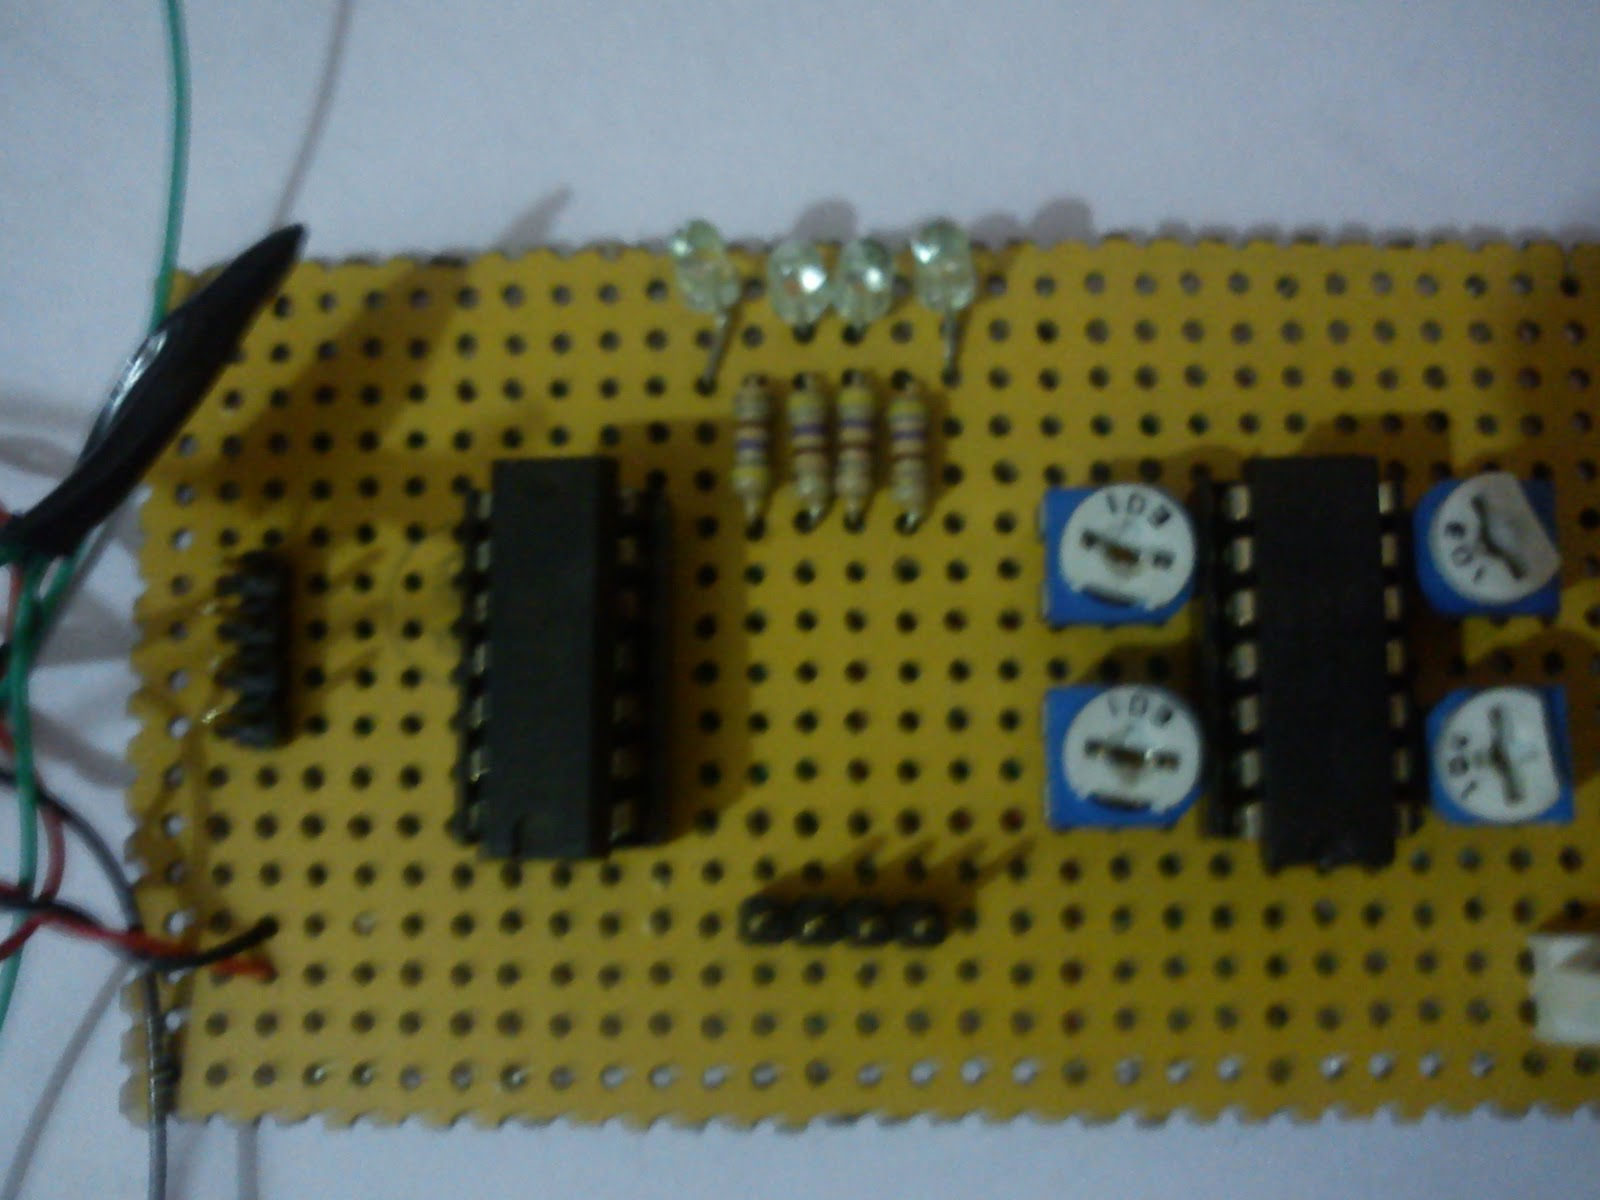 Electronics Projects And Details Self Balancing Robot Servo Motor Control Through Keypad Using 8051 Microcontroller At89c51 The Characteristics Of Op Amp In Configuration Comparator Can Be Describe Aswe Say That When V2 Is Non Inverting Terminal Voltage